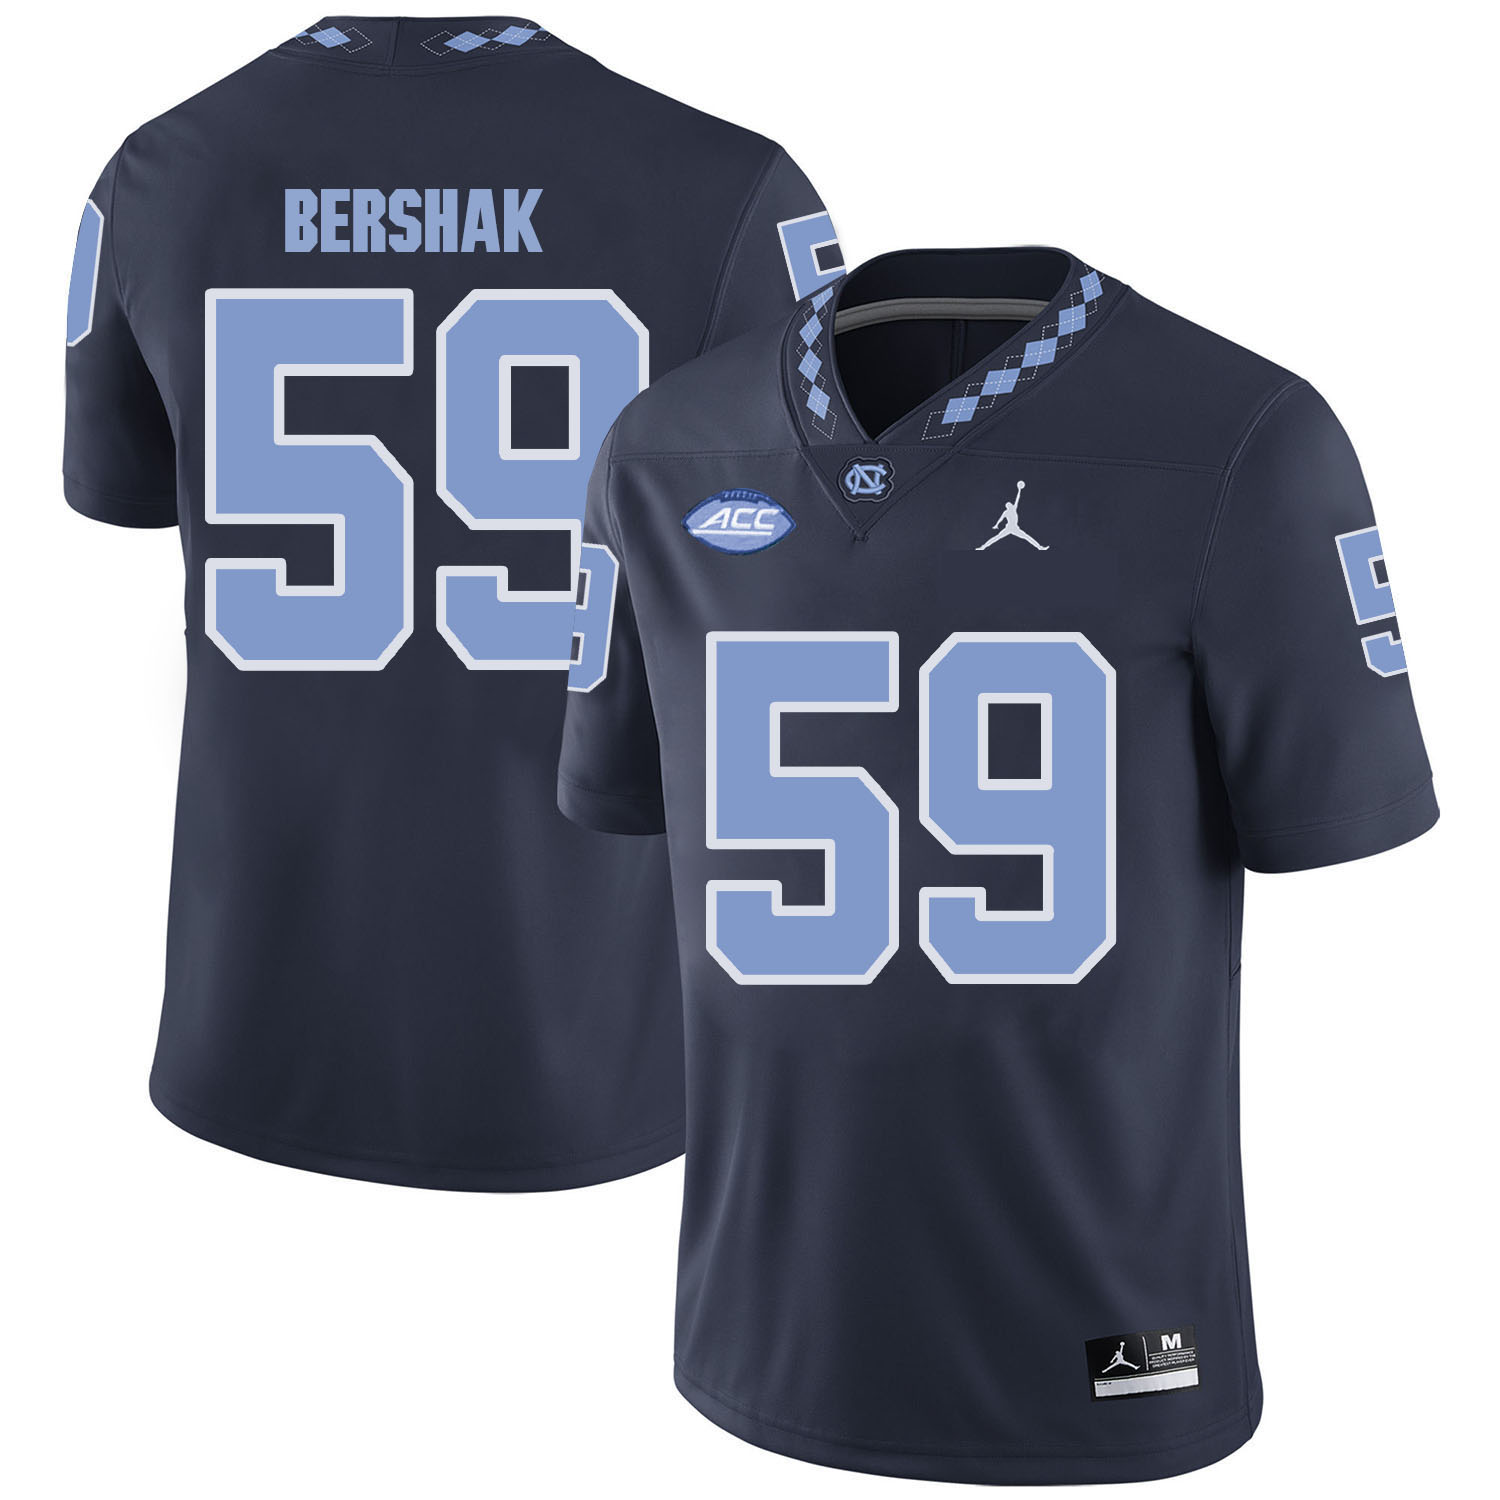 North Carolina Tar Heels 59 Andy Bershak Black College Football Jersey